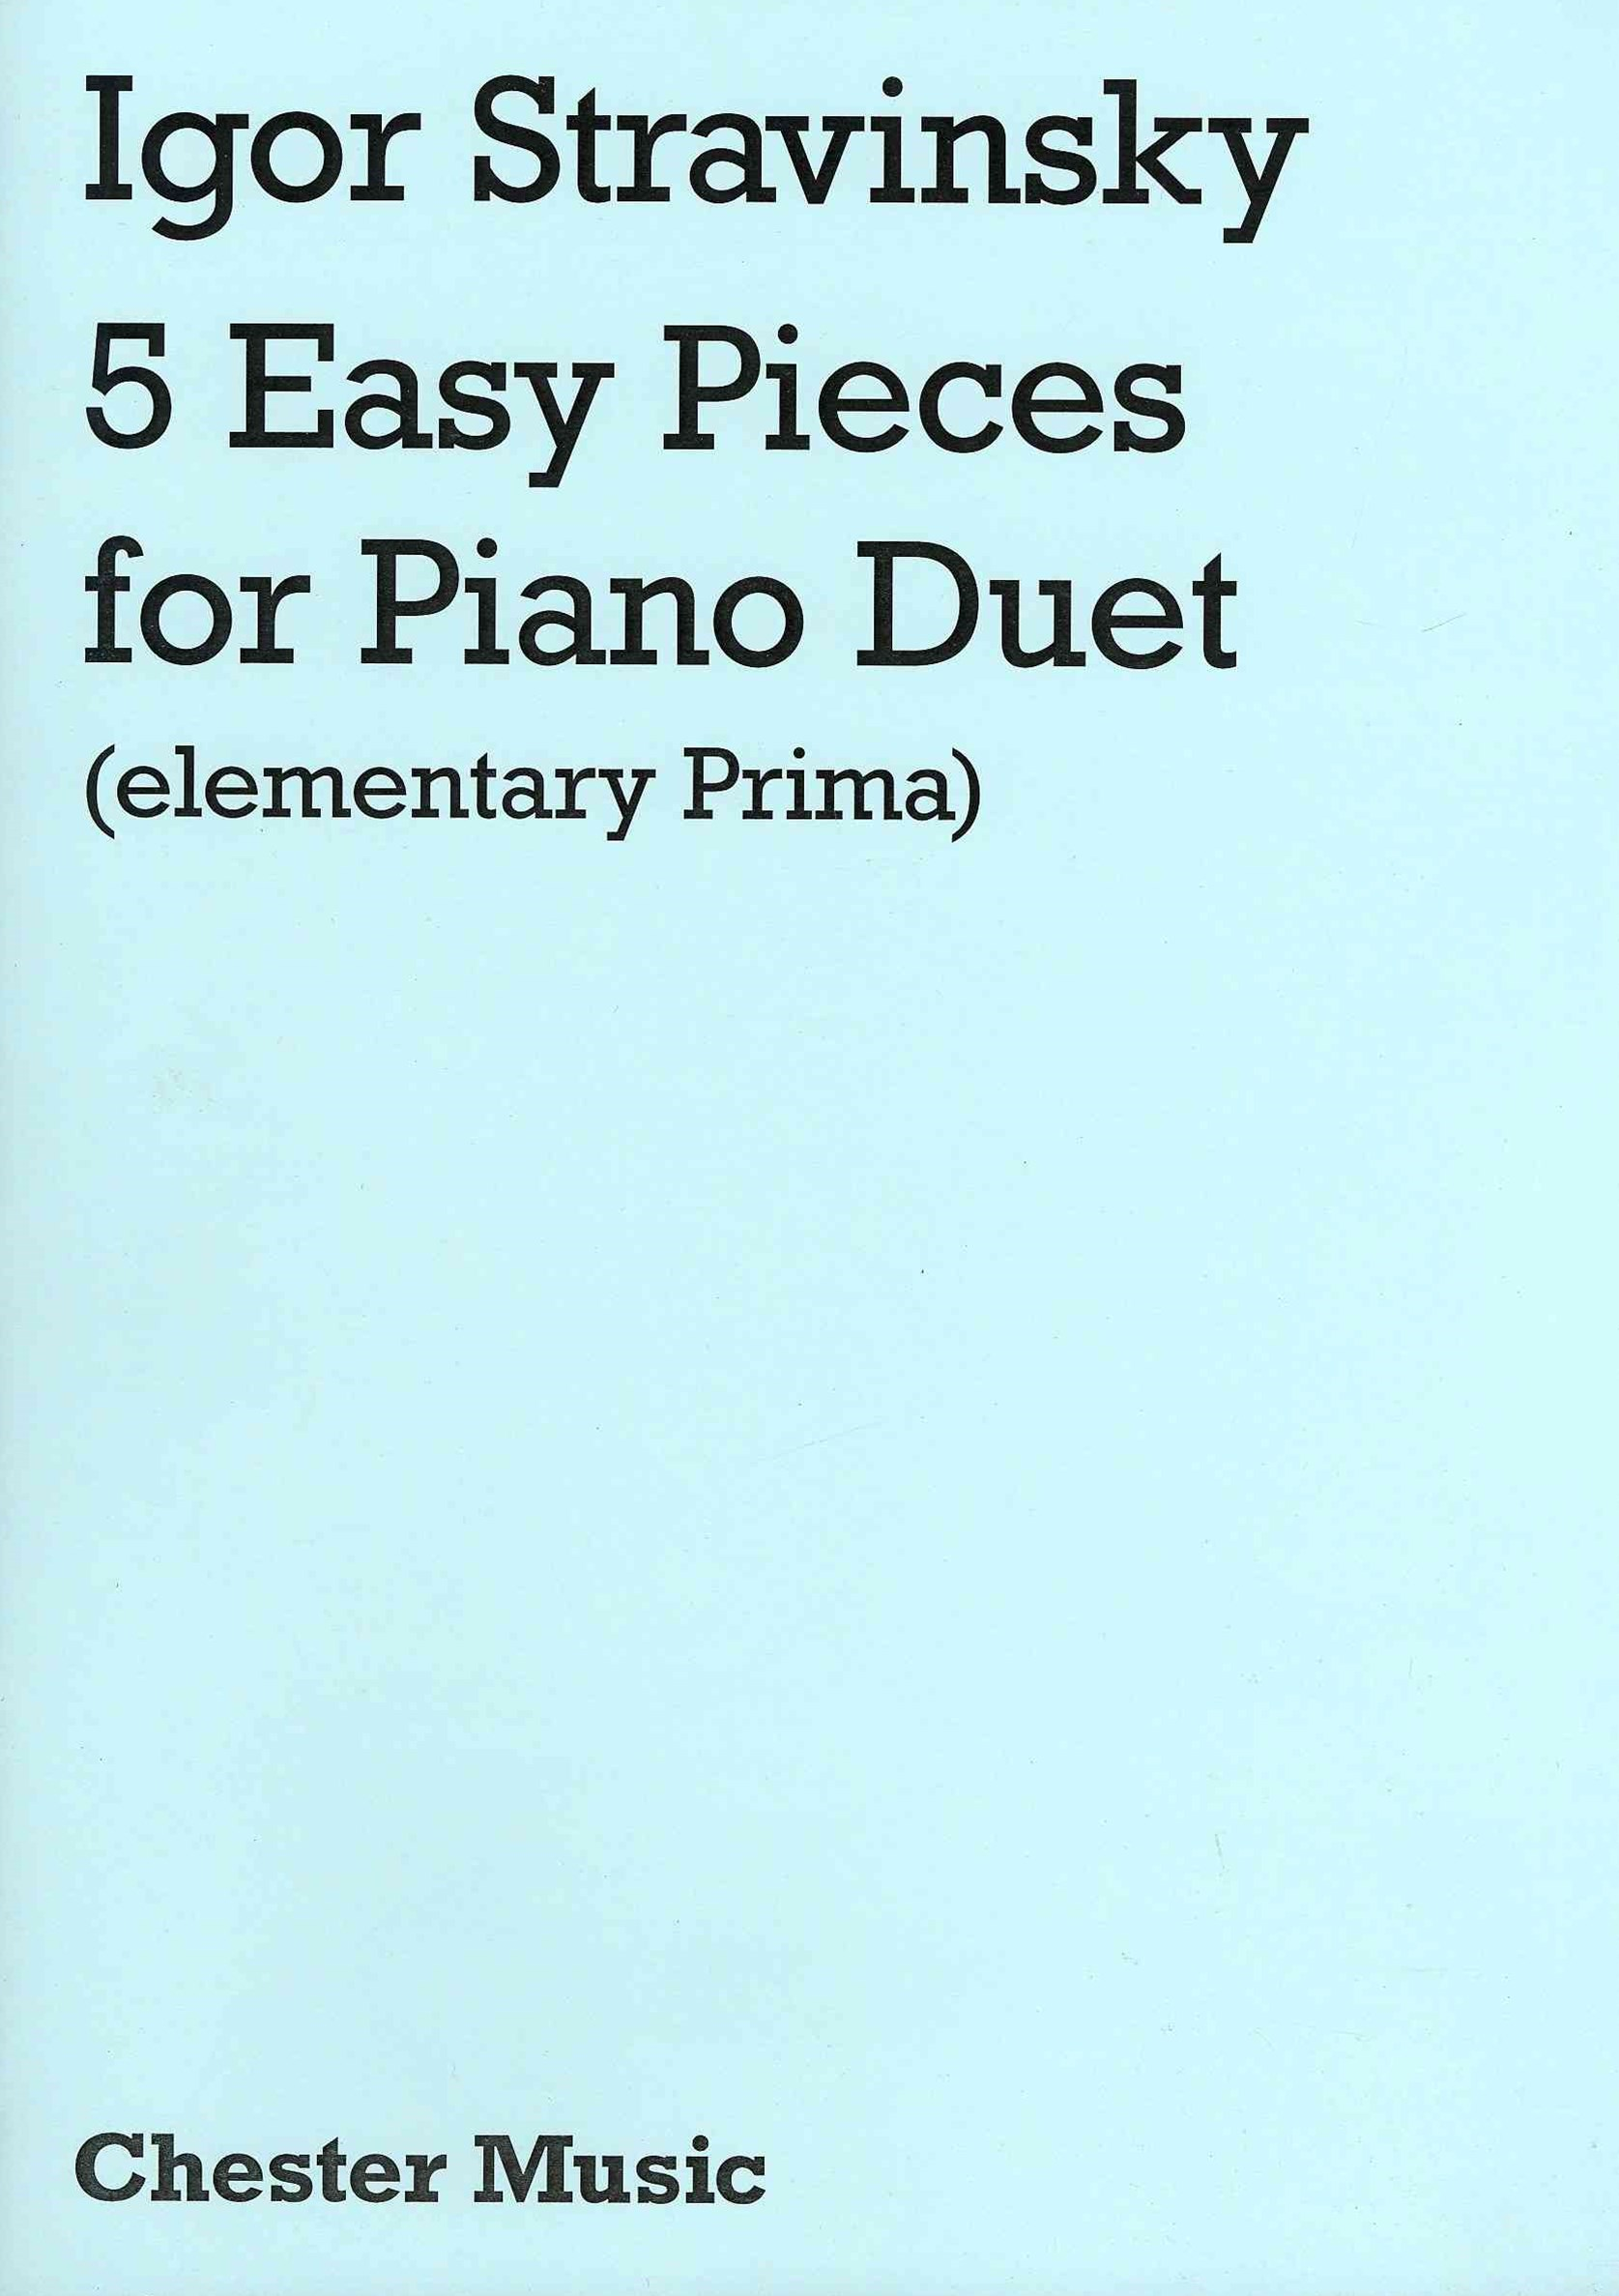 5 Easy Pieces for Piano Duet